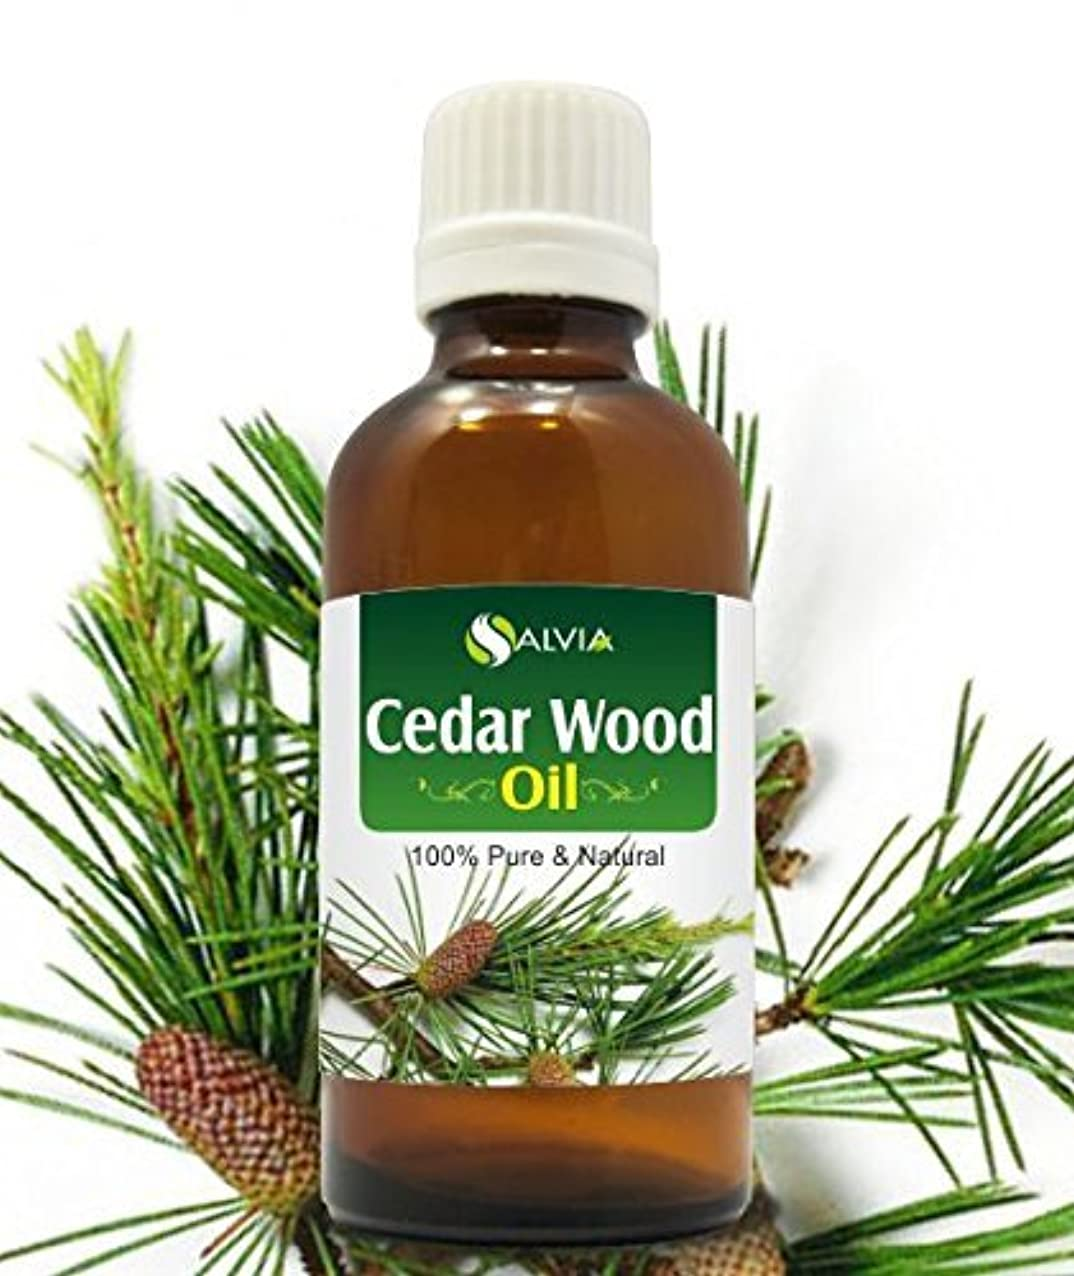 引くアクセントヘクタールCEDAR WOOD OIL 100% NATURAL PURE UNDILUTED UNCUT ESSENTIAL OIL 15ml by SALVIA